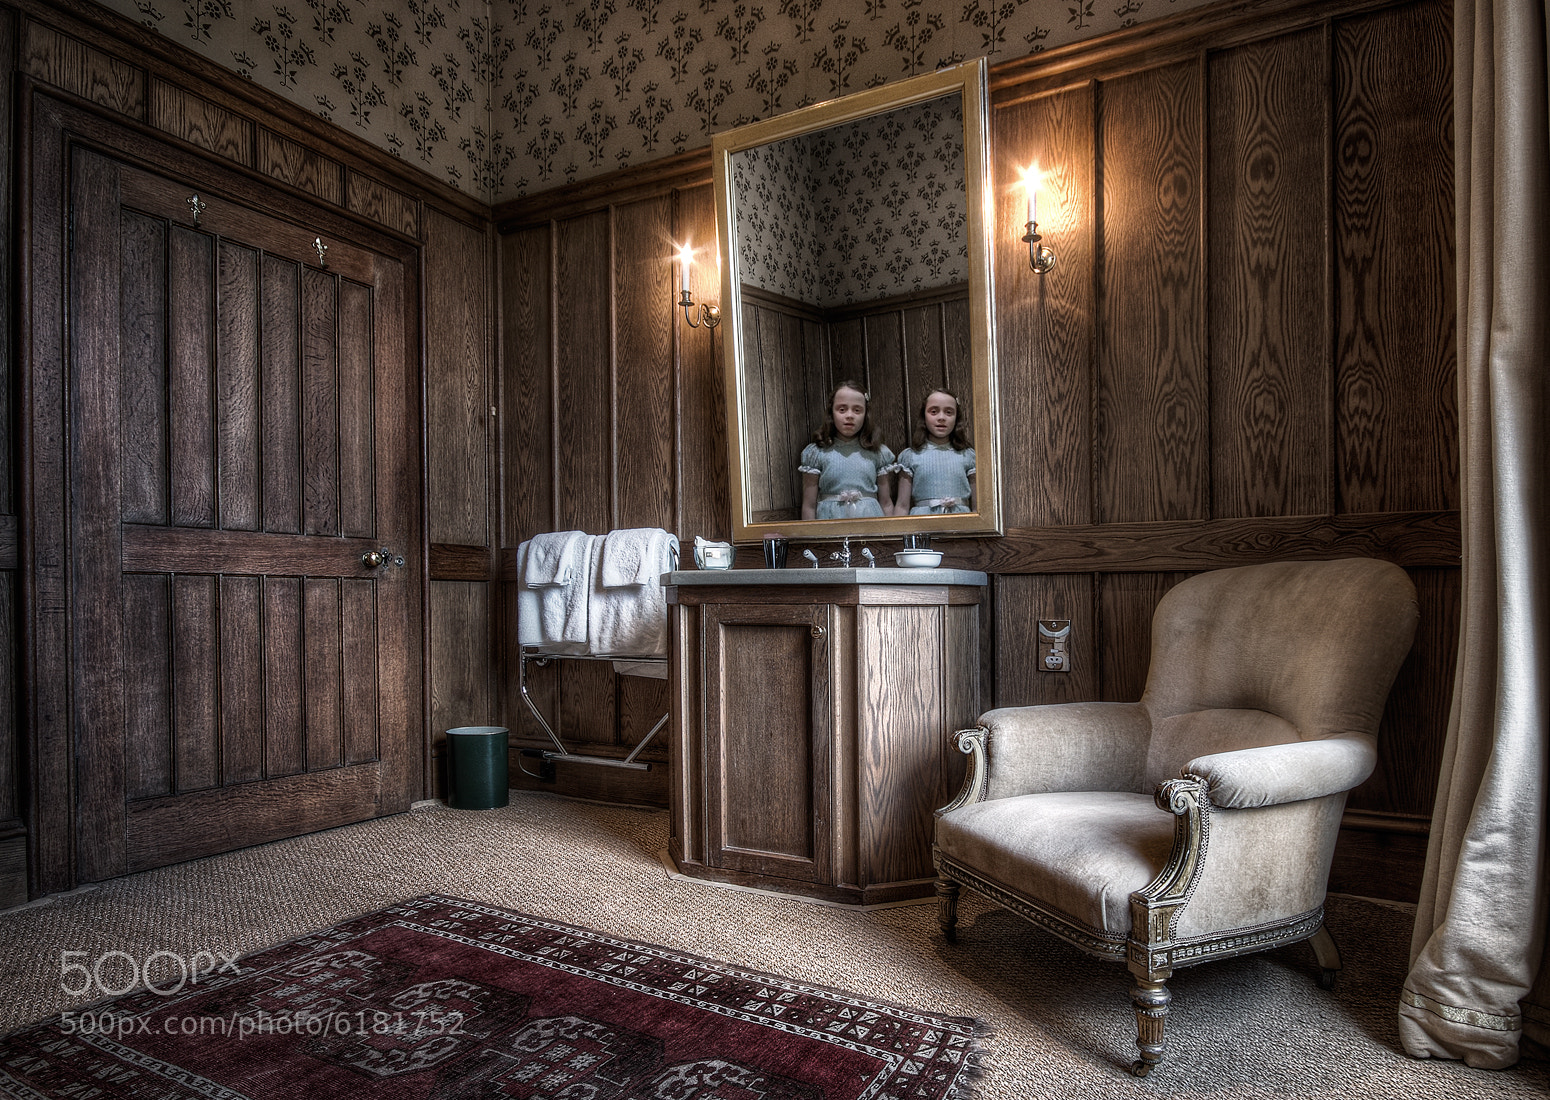 Photograph Room 237 by Dave Urwin on 500px